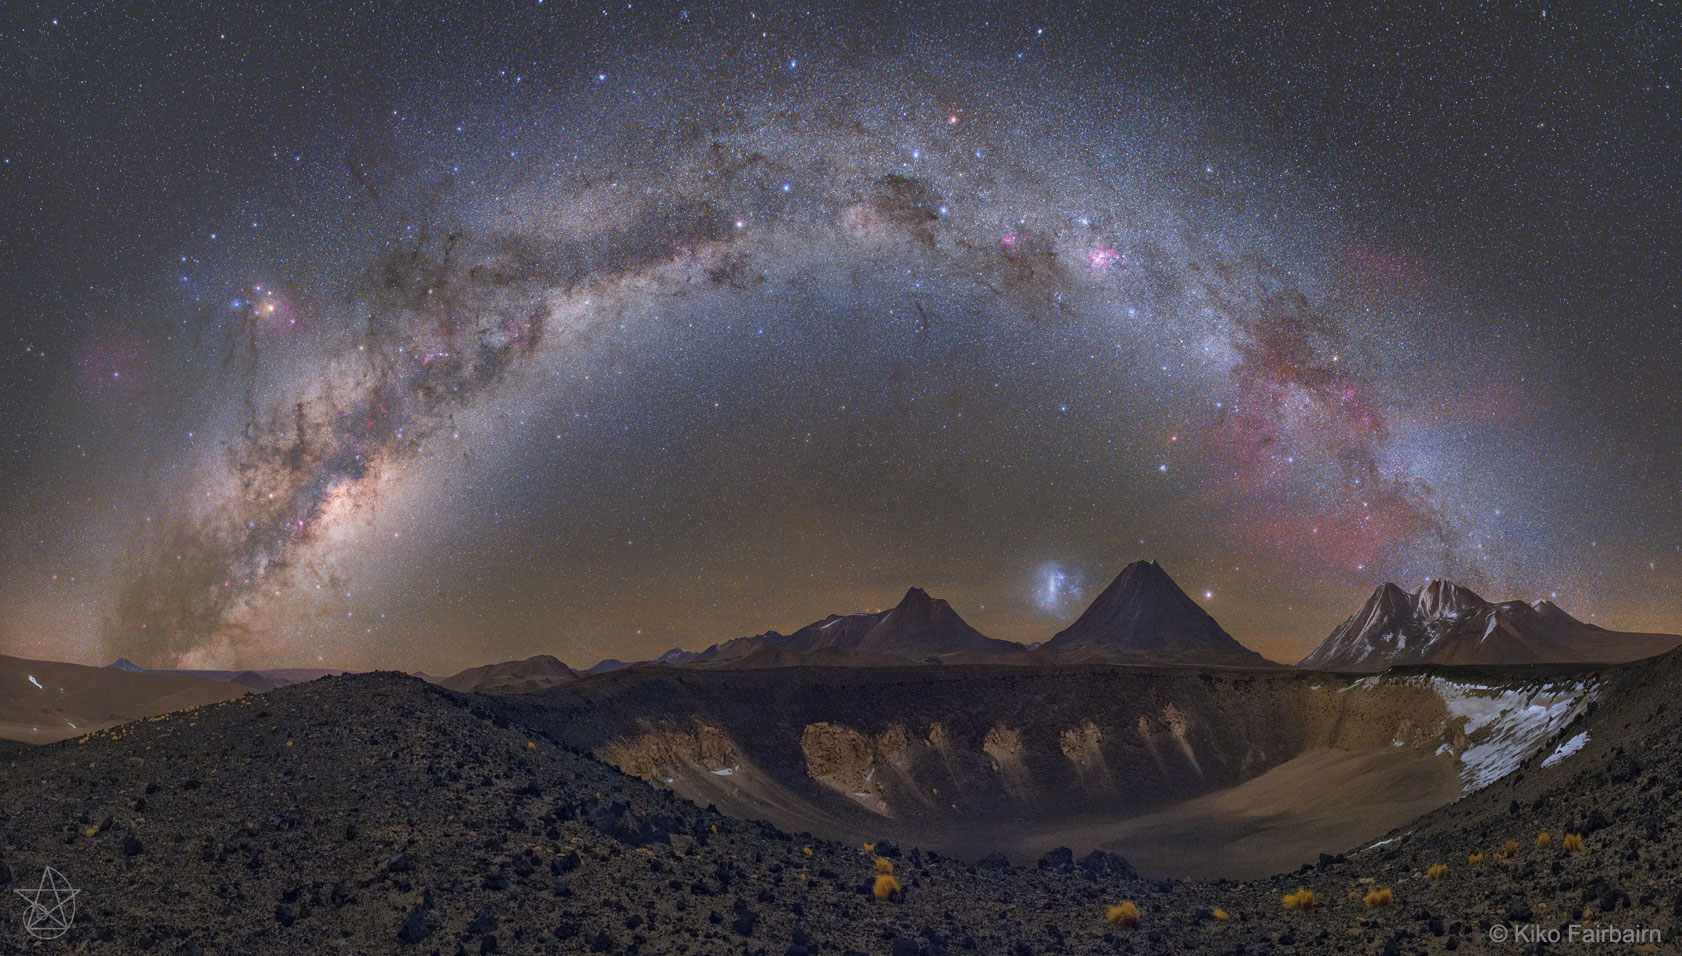 Milky Way over Chilean Volcanoes. Image Credit & Copyright: Carlos Eduardo Fairbairn